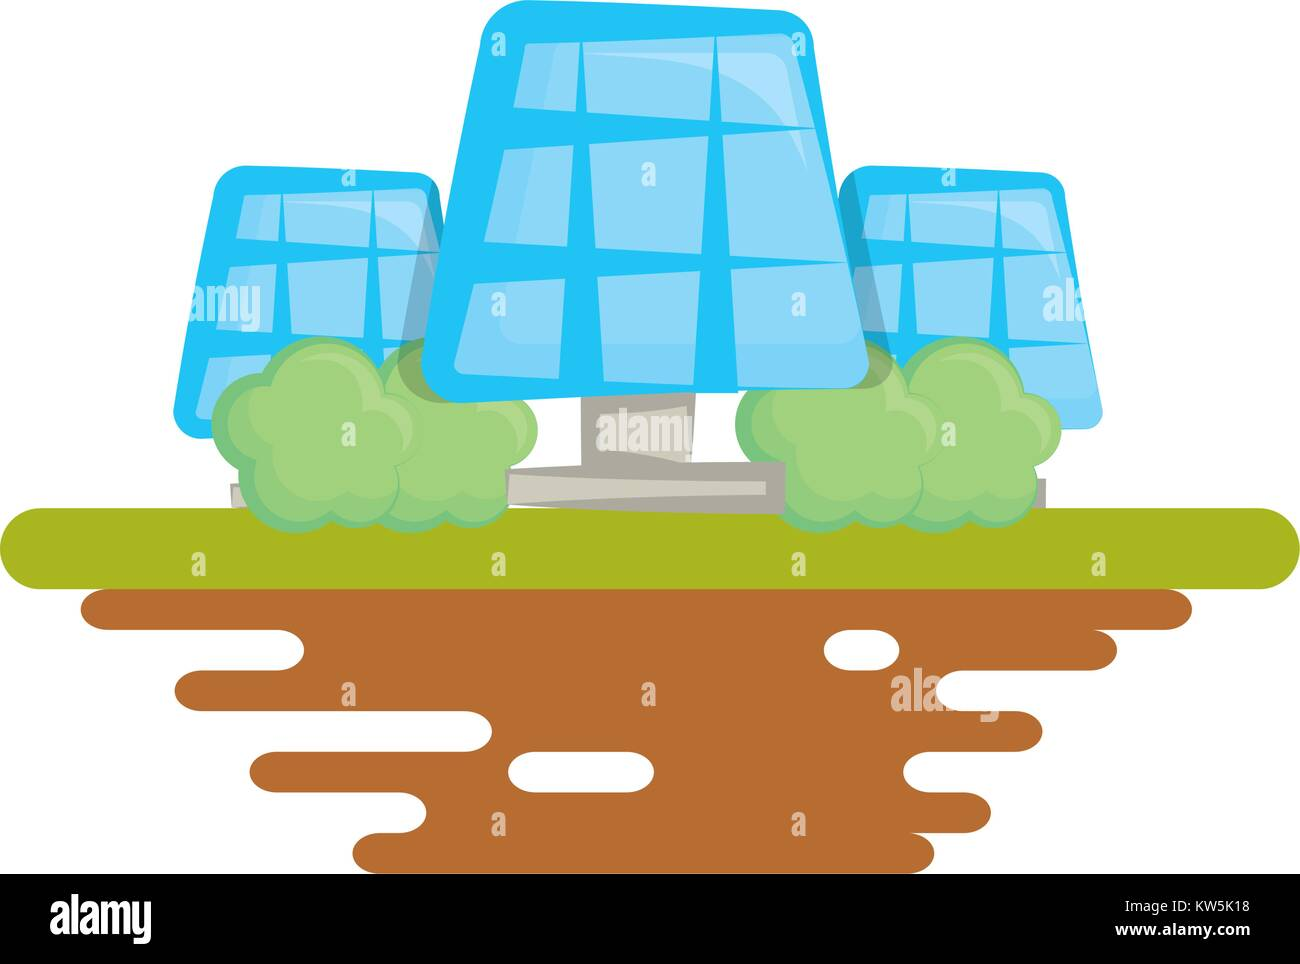 Solar panels on ground cartoon - Stock Vector